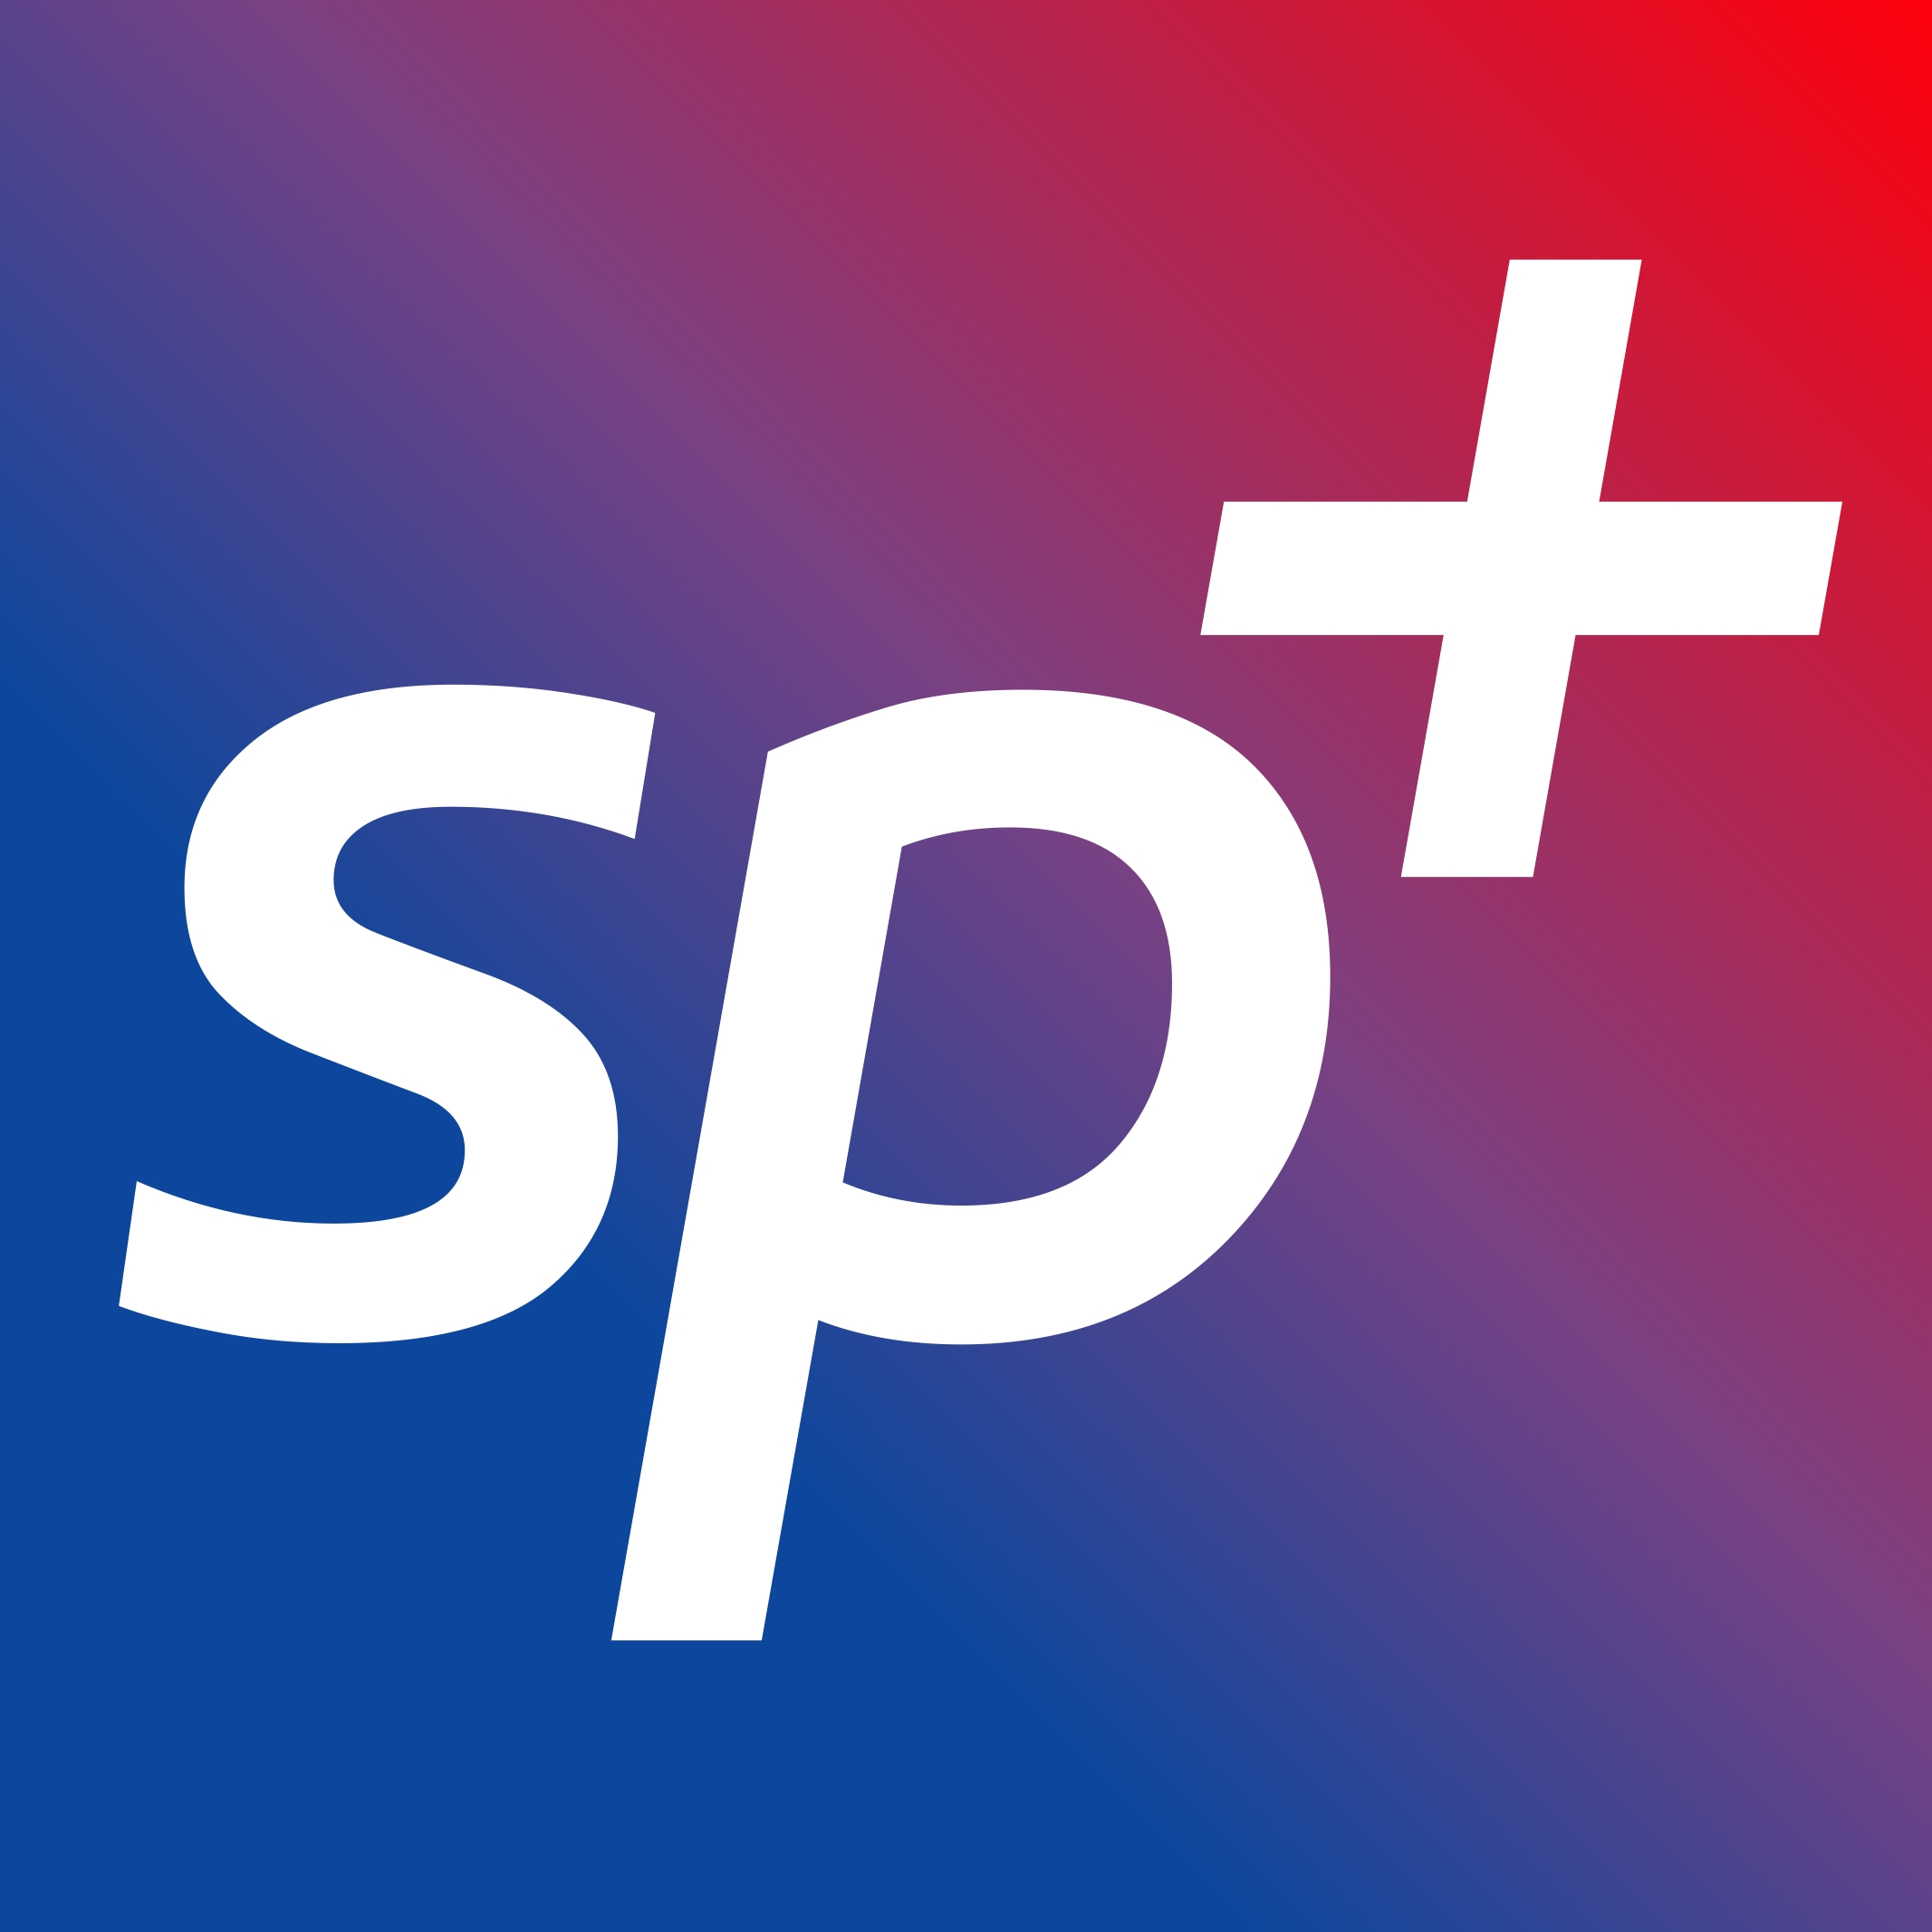 ExxonMobil Launches Speedpass+ Mobile Payment App with Apple Pay ...